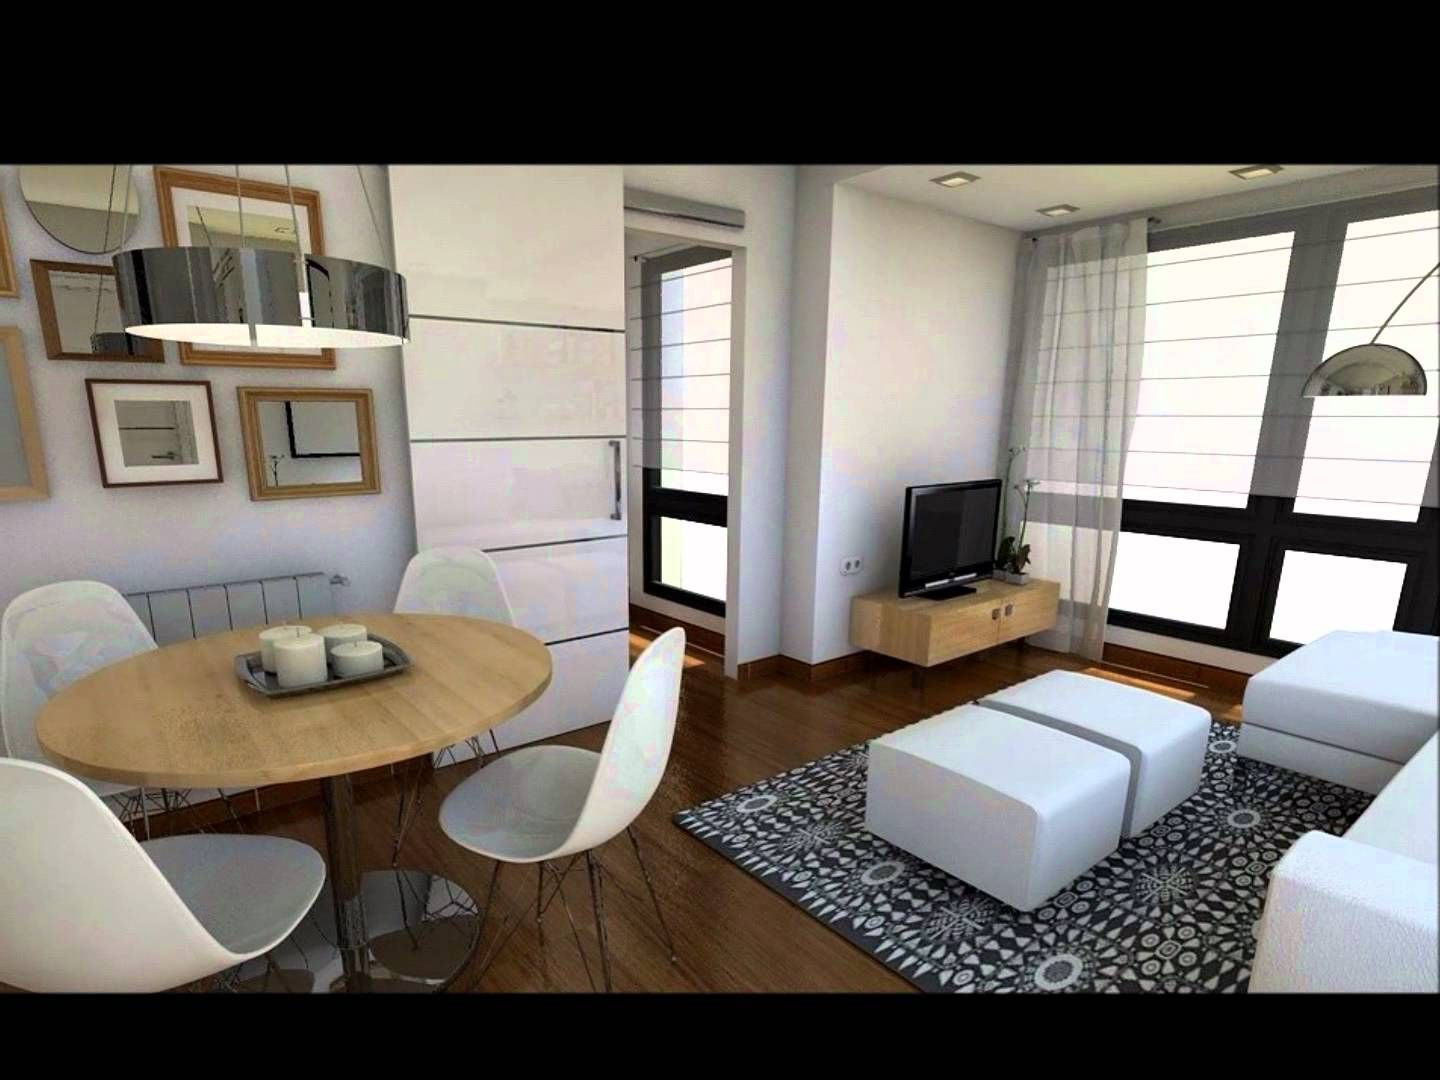 Dise o interior apartamento 40 m2 decoracion for Decoracion casa 40 metros cuadrados